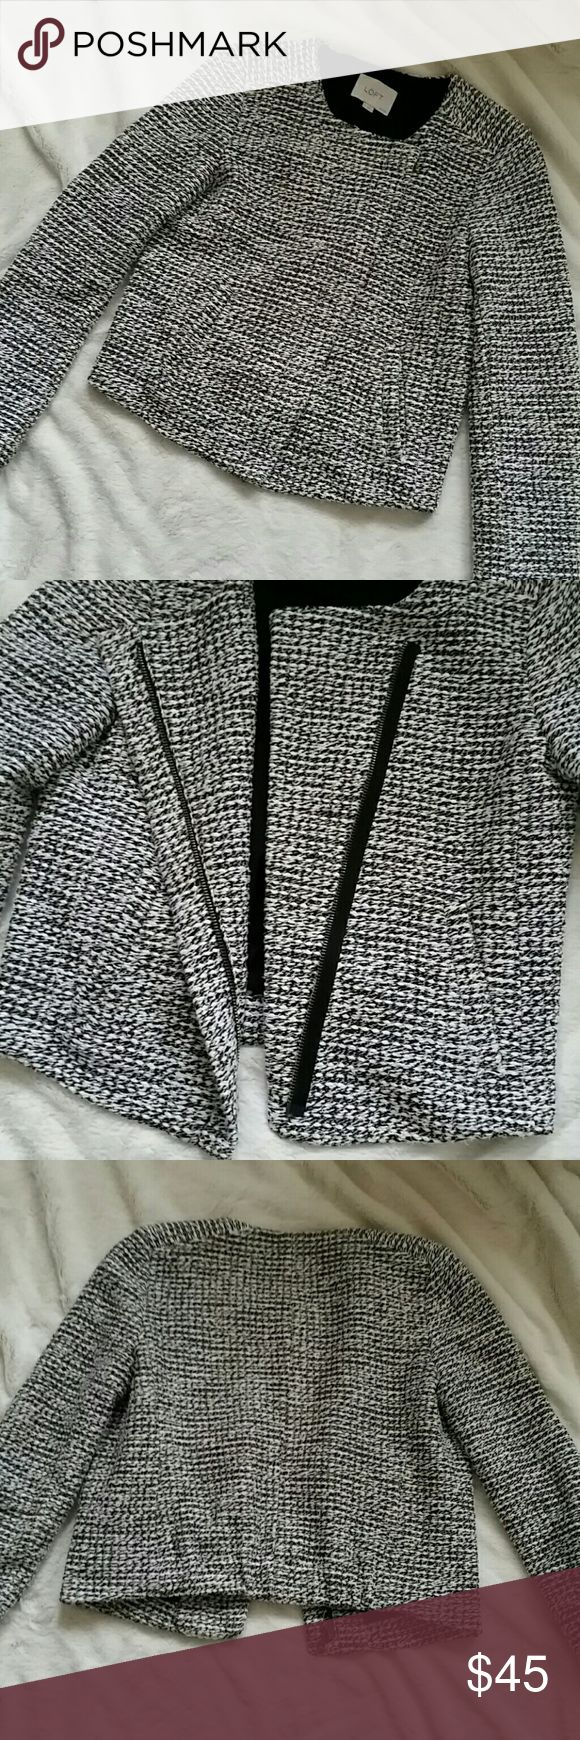 LOFT petites blazer Big Sale plus 25% off all bundles ends tonight!!  Gorgeous black and white blazer from LOFT petites.  Zip up front with two functional pockets.  Excellent condition.  Arm length is 22.25 inches and from shoulder to bottom is 19.5 inches long. LOFT Jackets & Coats Blazers